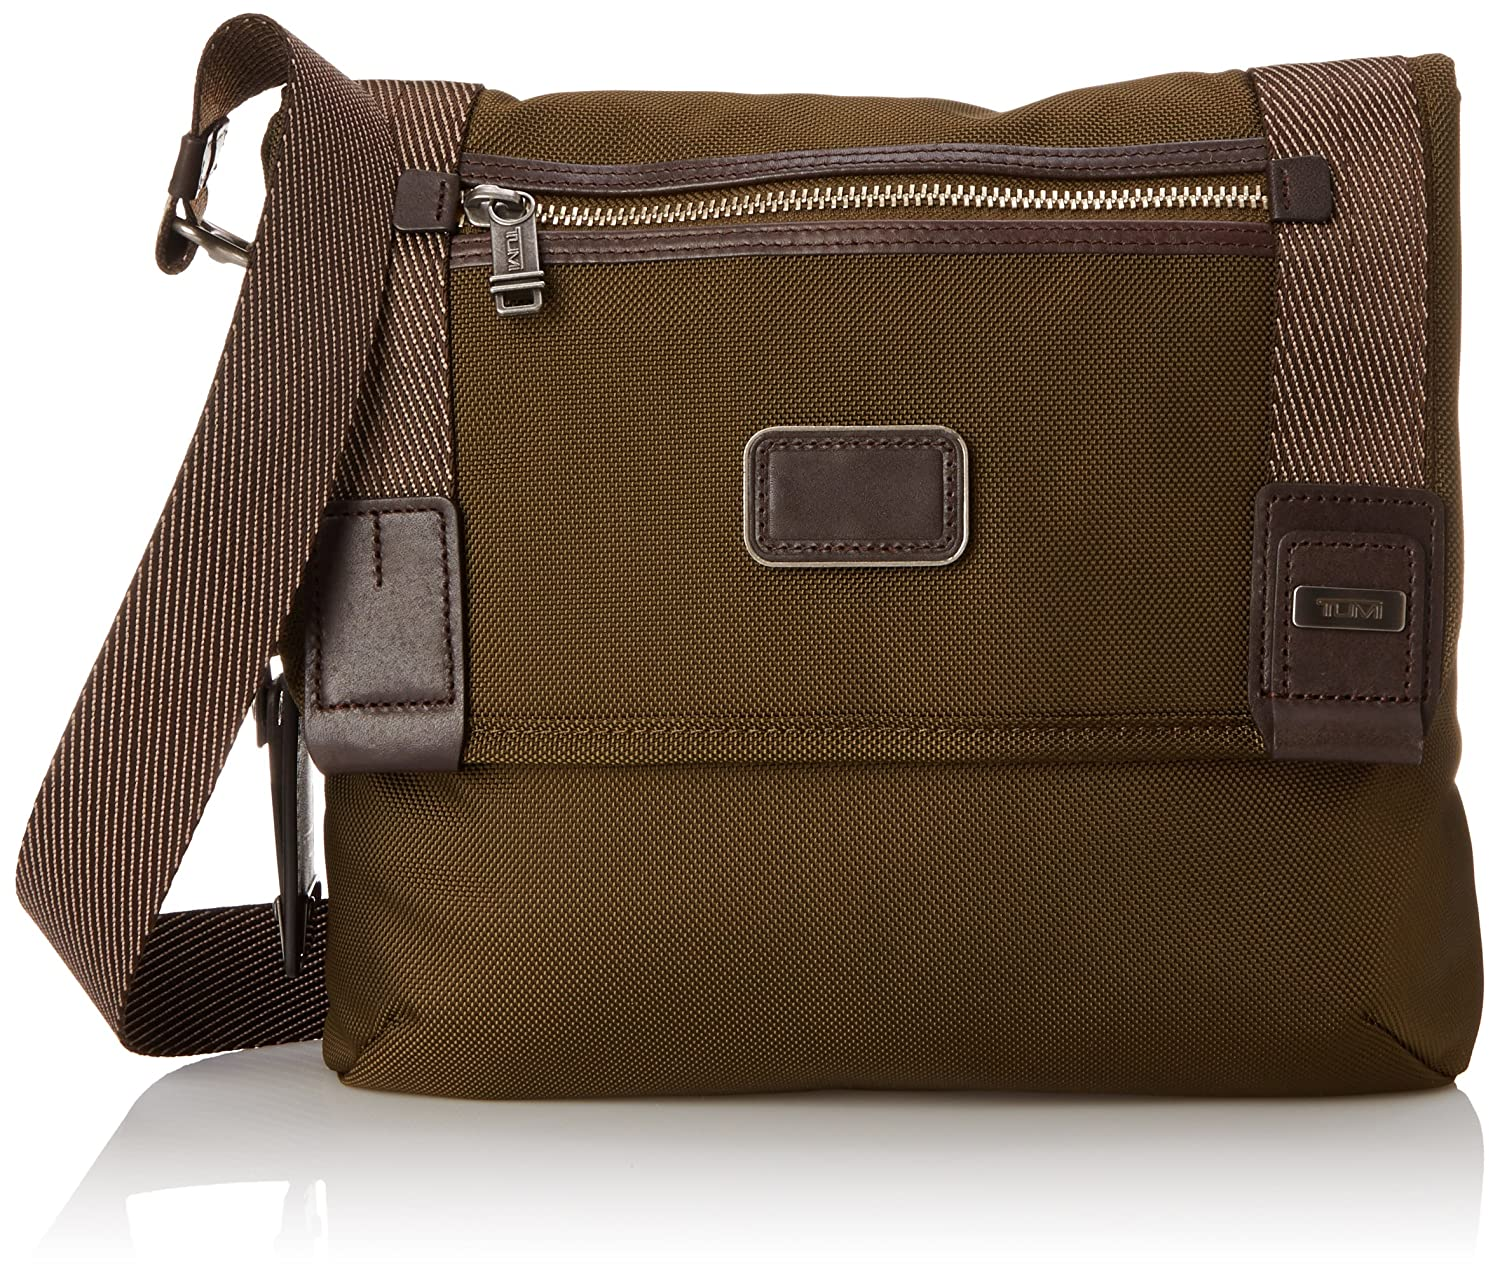 Amazon - 50% off Tumi Alpha Bravo Beale Mini Messenger Bag - $91.99